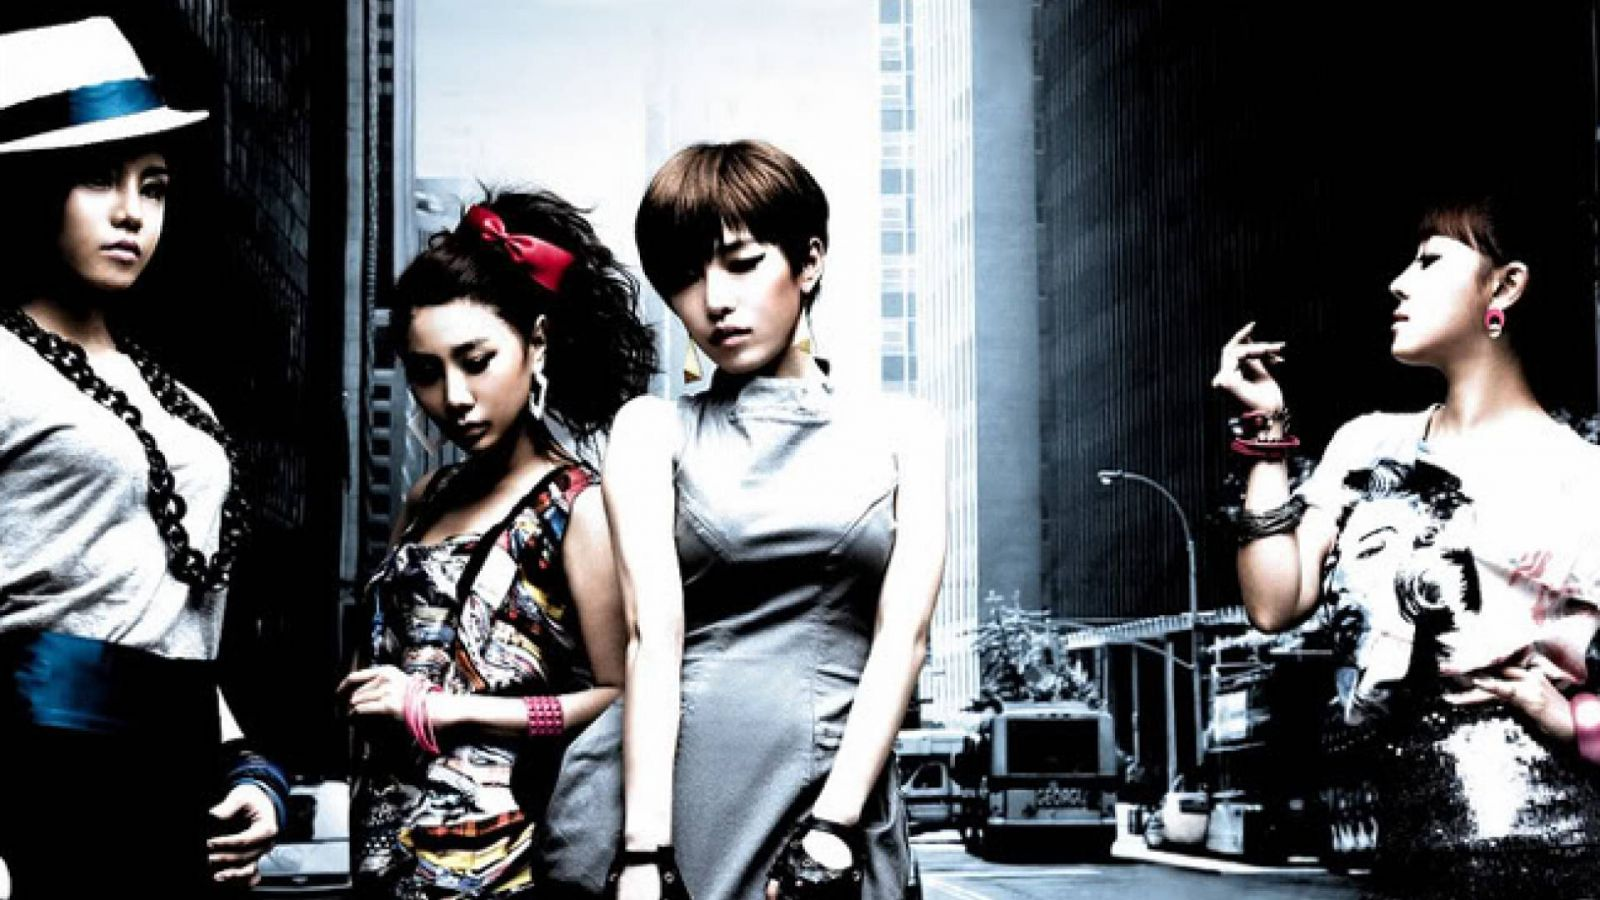 Les Brown Eyed Girls en concert à Séoul © Brown Eyed Girls